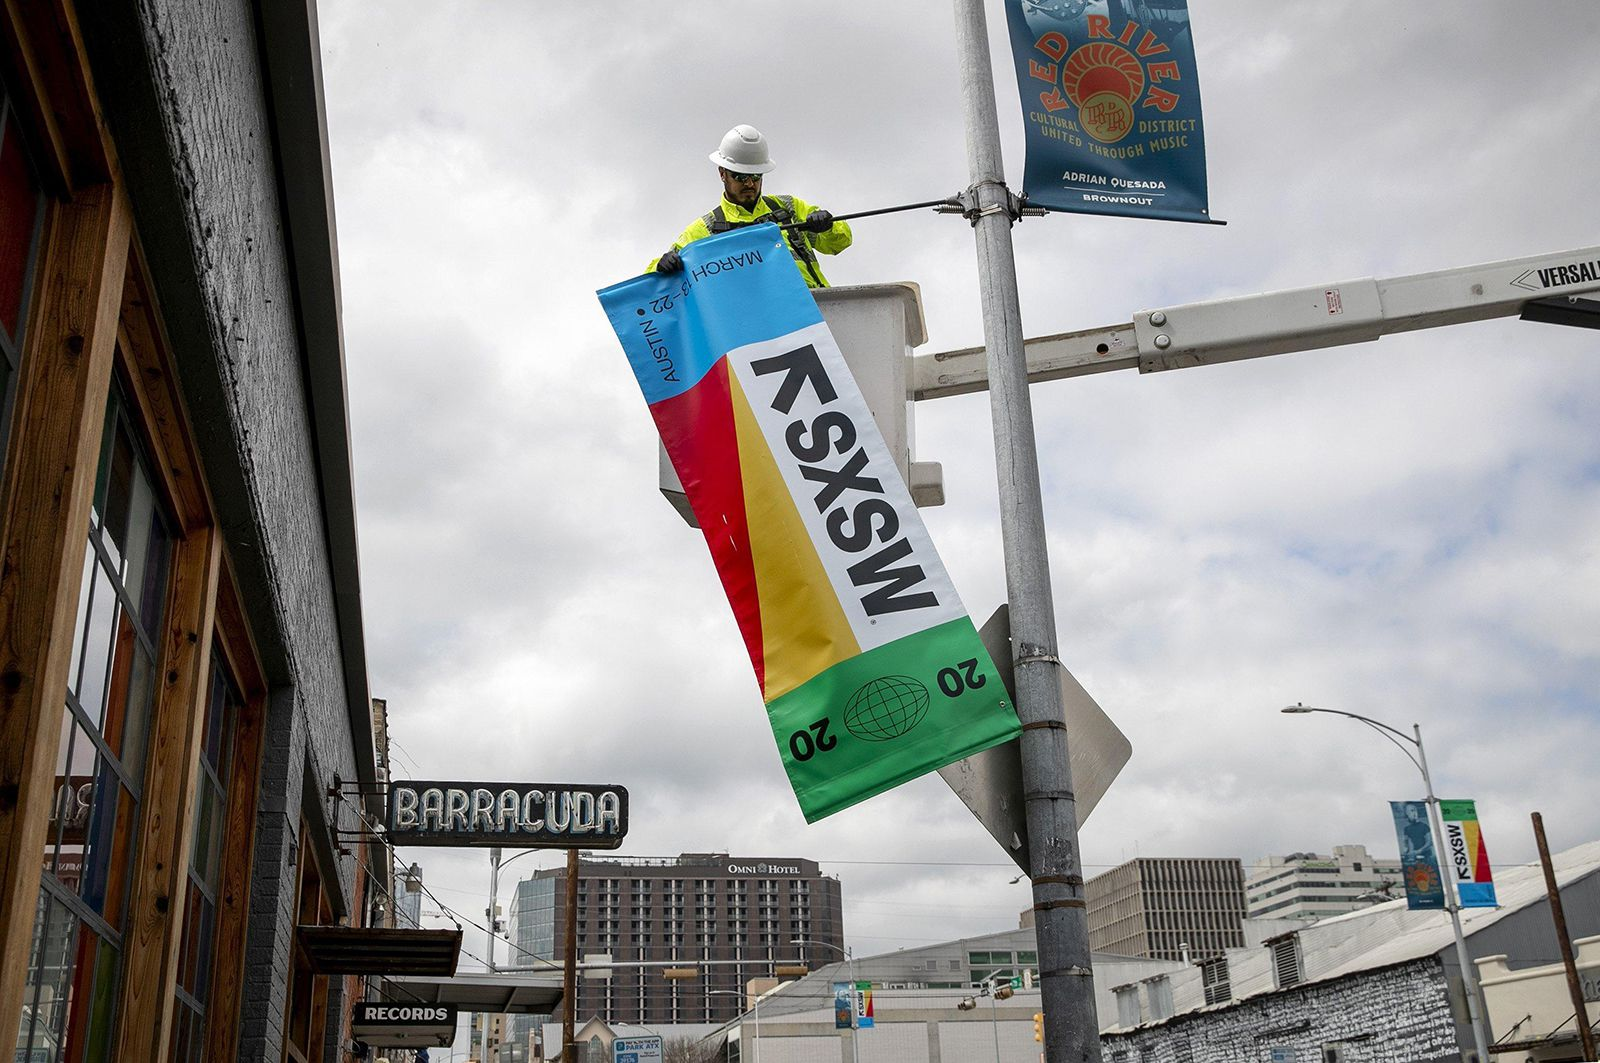 David Rodriguez, with the city of Austin's transportation department, takes down a South by Southwest banner on East 7th Street in Austin on Tuesday, March 24.